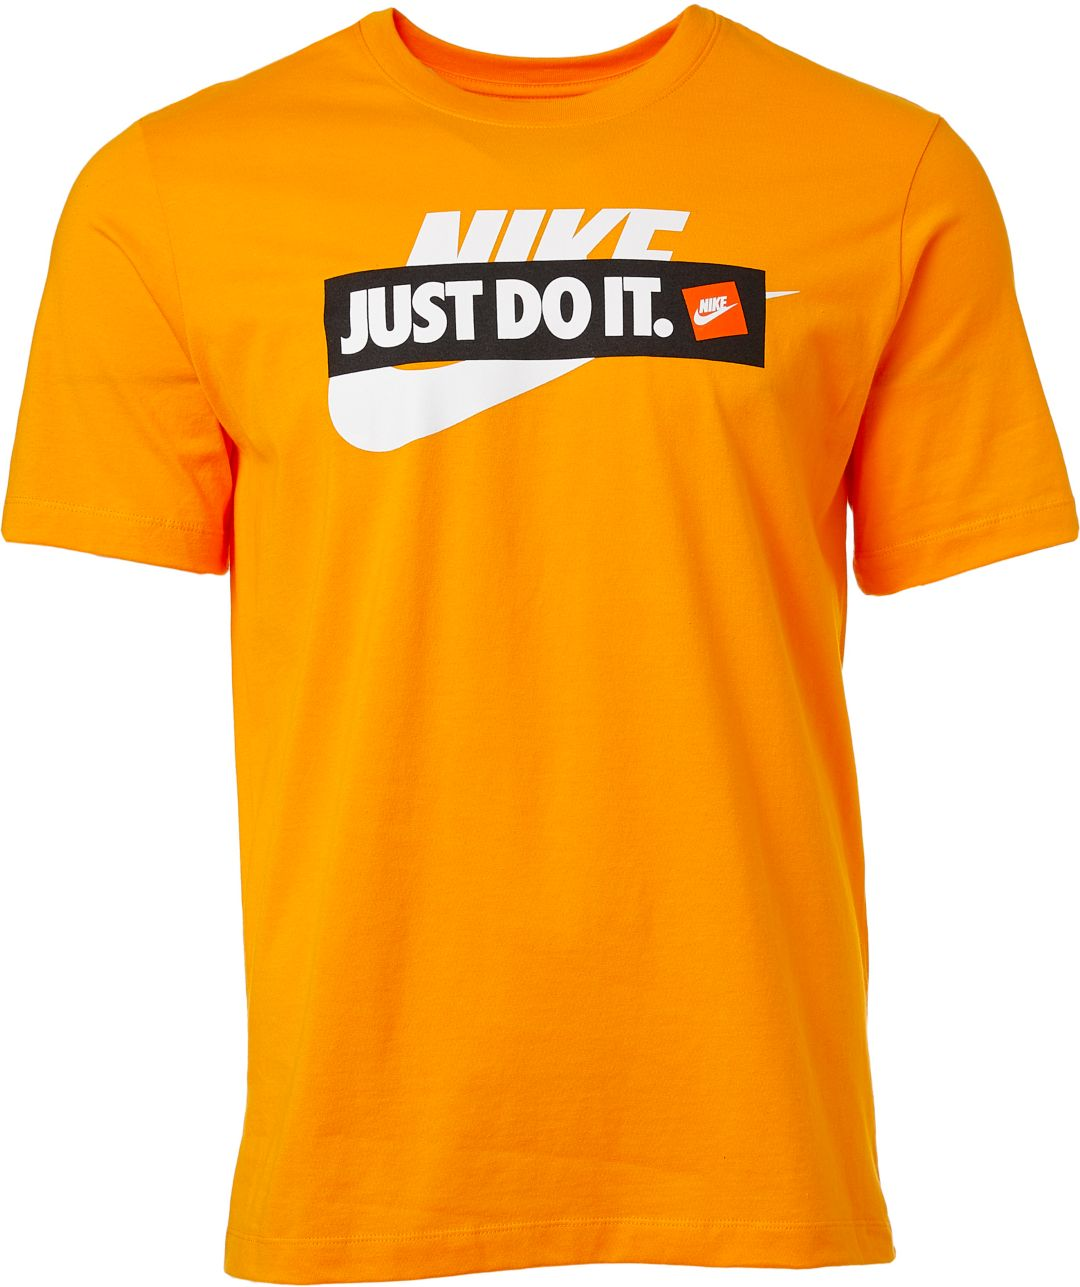 a4abac4d Nike Men's Sportswear Just Do It Graphic Tee. noImageFound. Previous